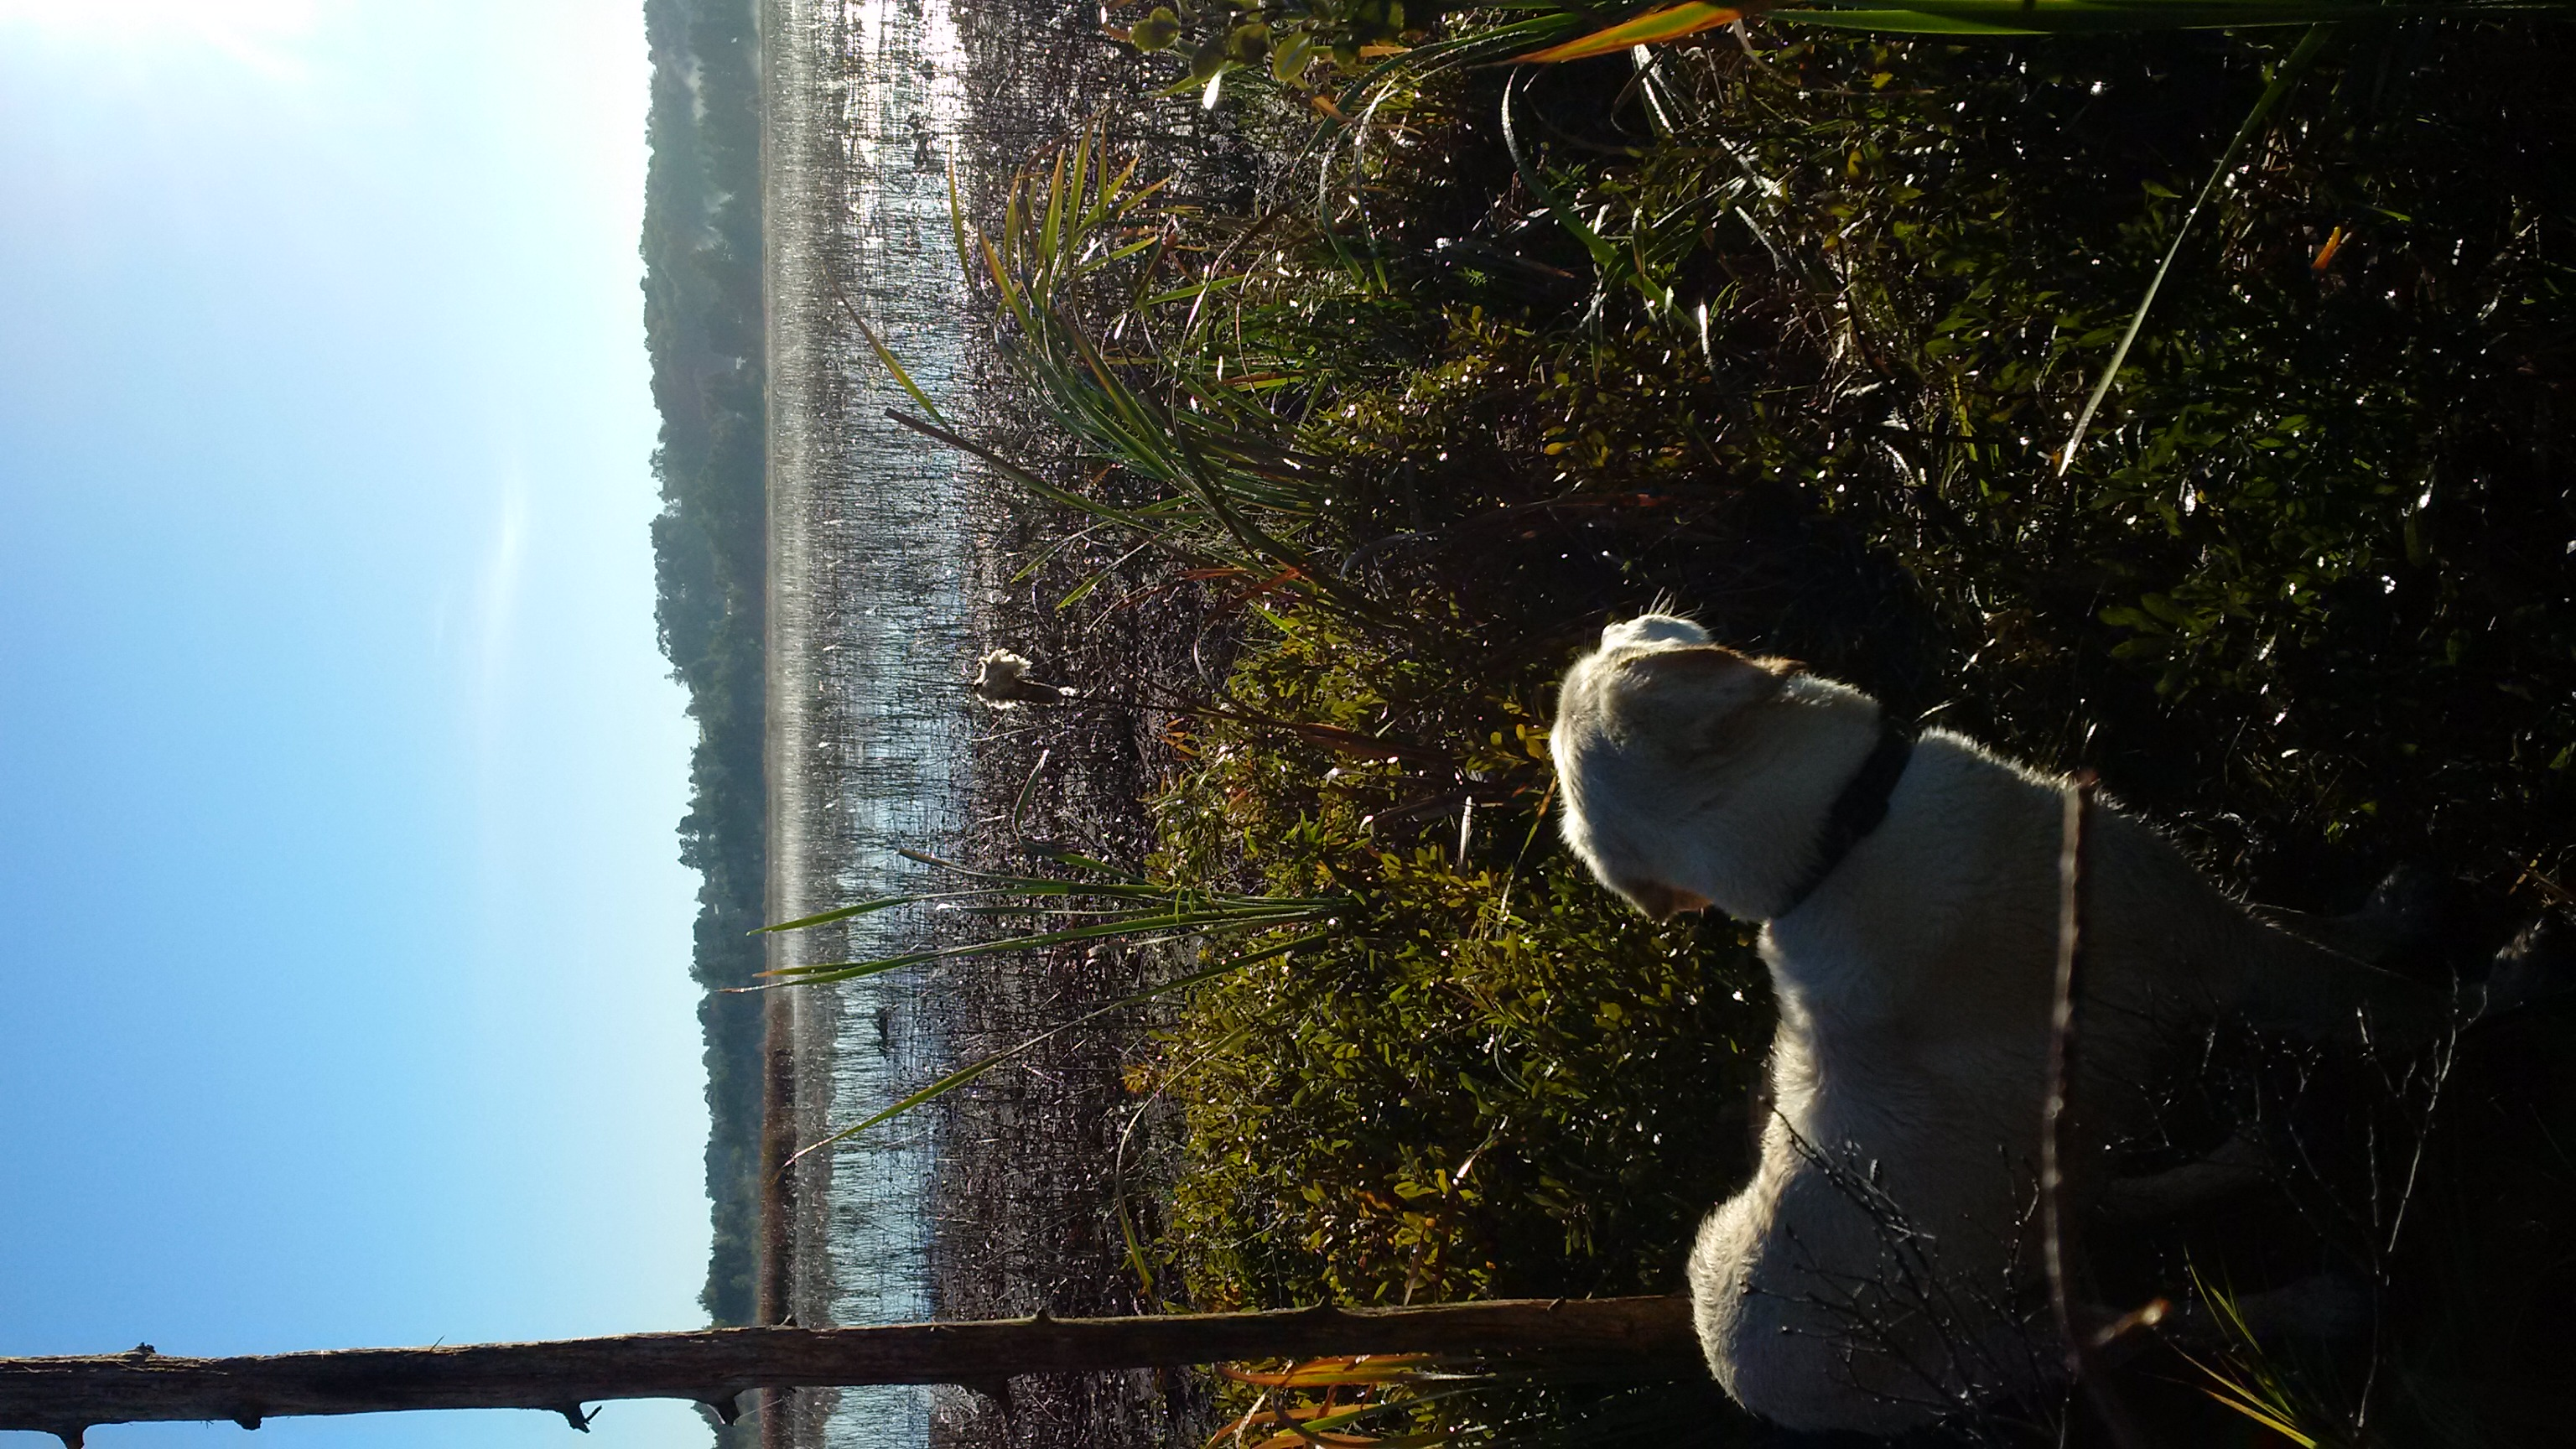 Watching the Marsh